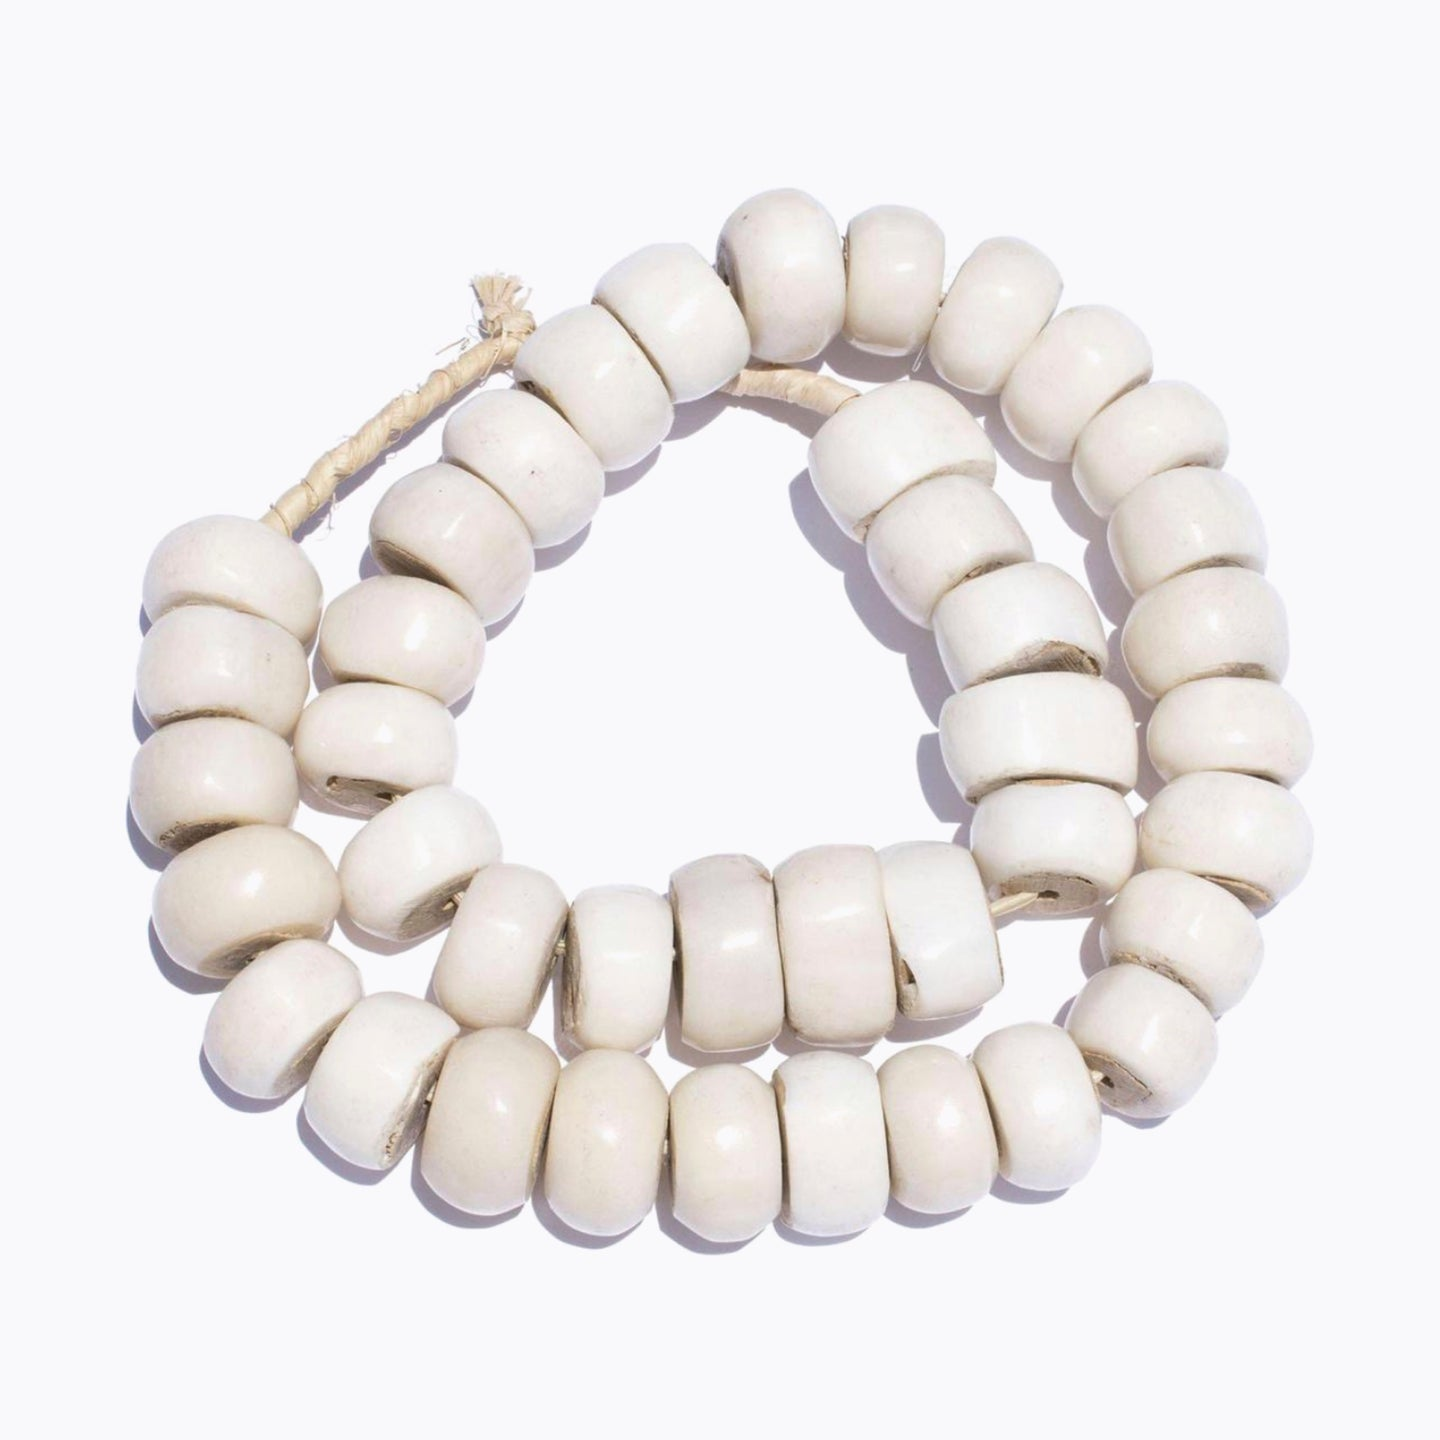 Bone Beads - More Options